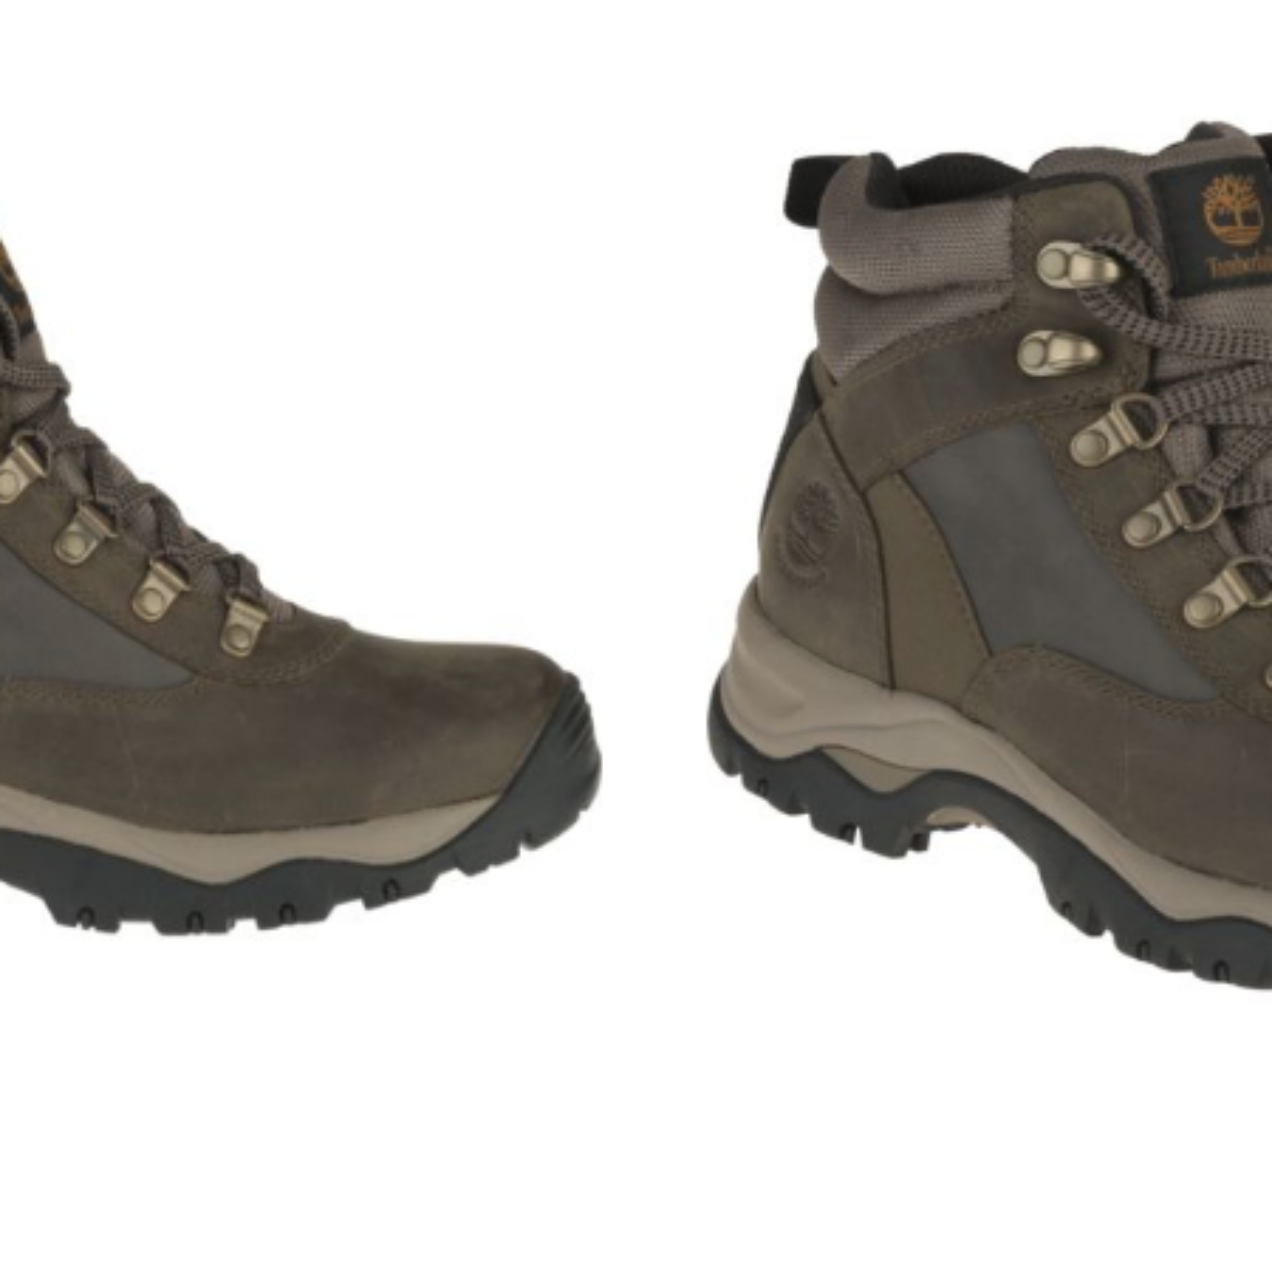 Timberland Women's Waterproof Hiking Boots 50% Off – Today Only!